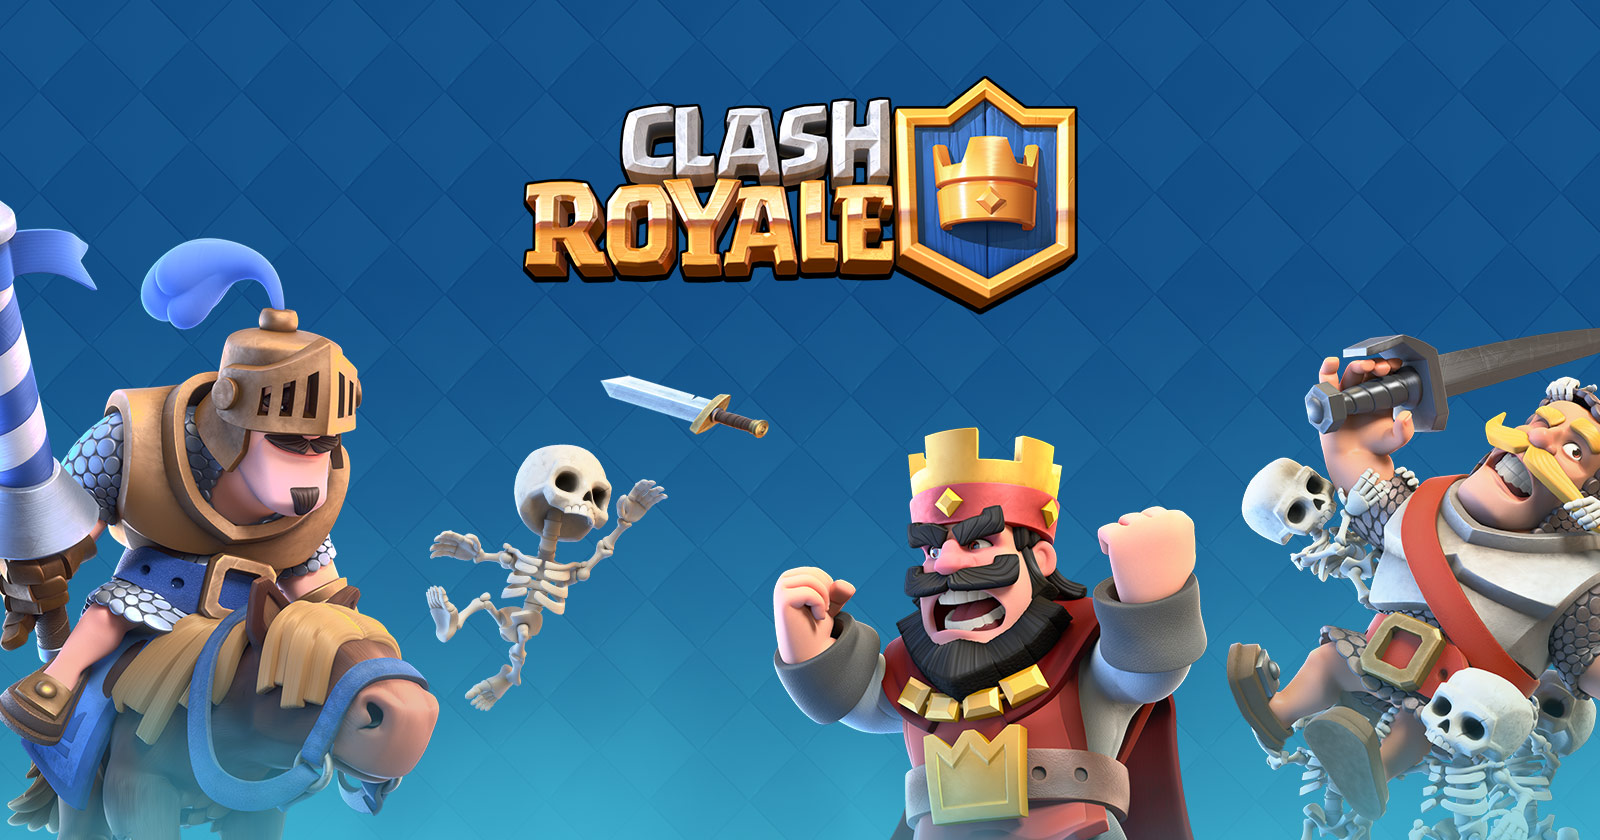 Clash Royale Review – Real Time Online Duals, Lots of Fun